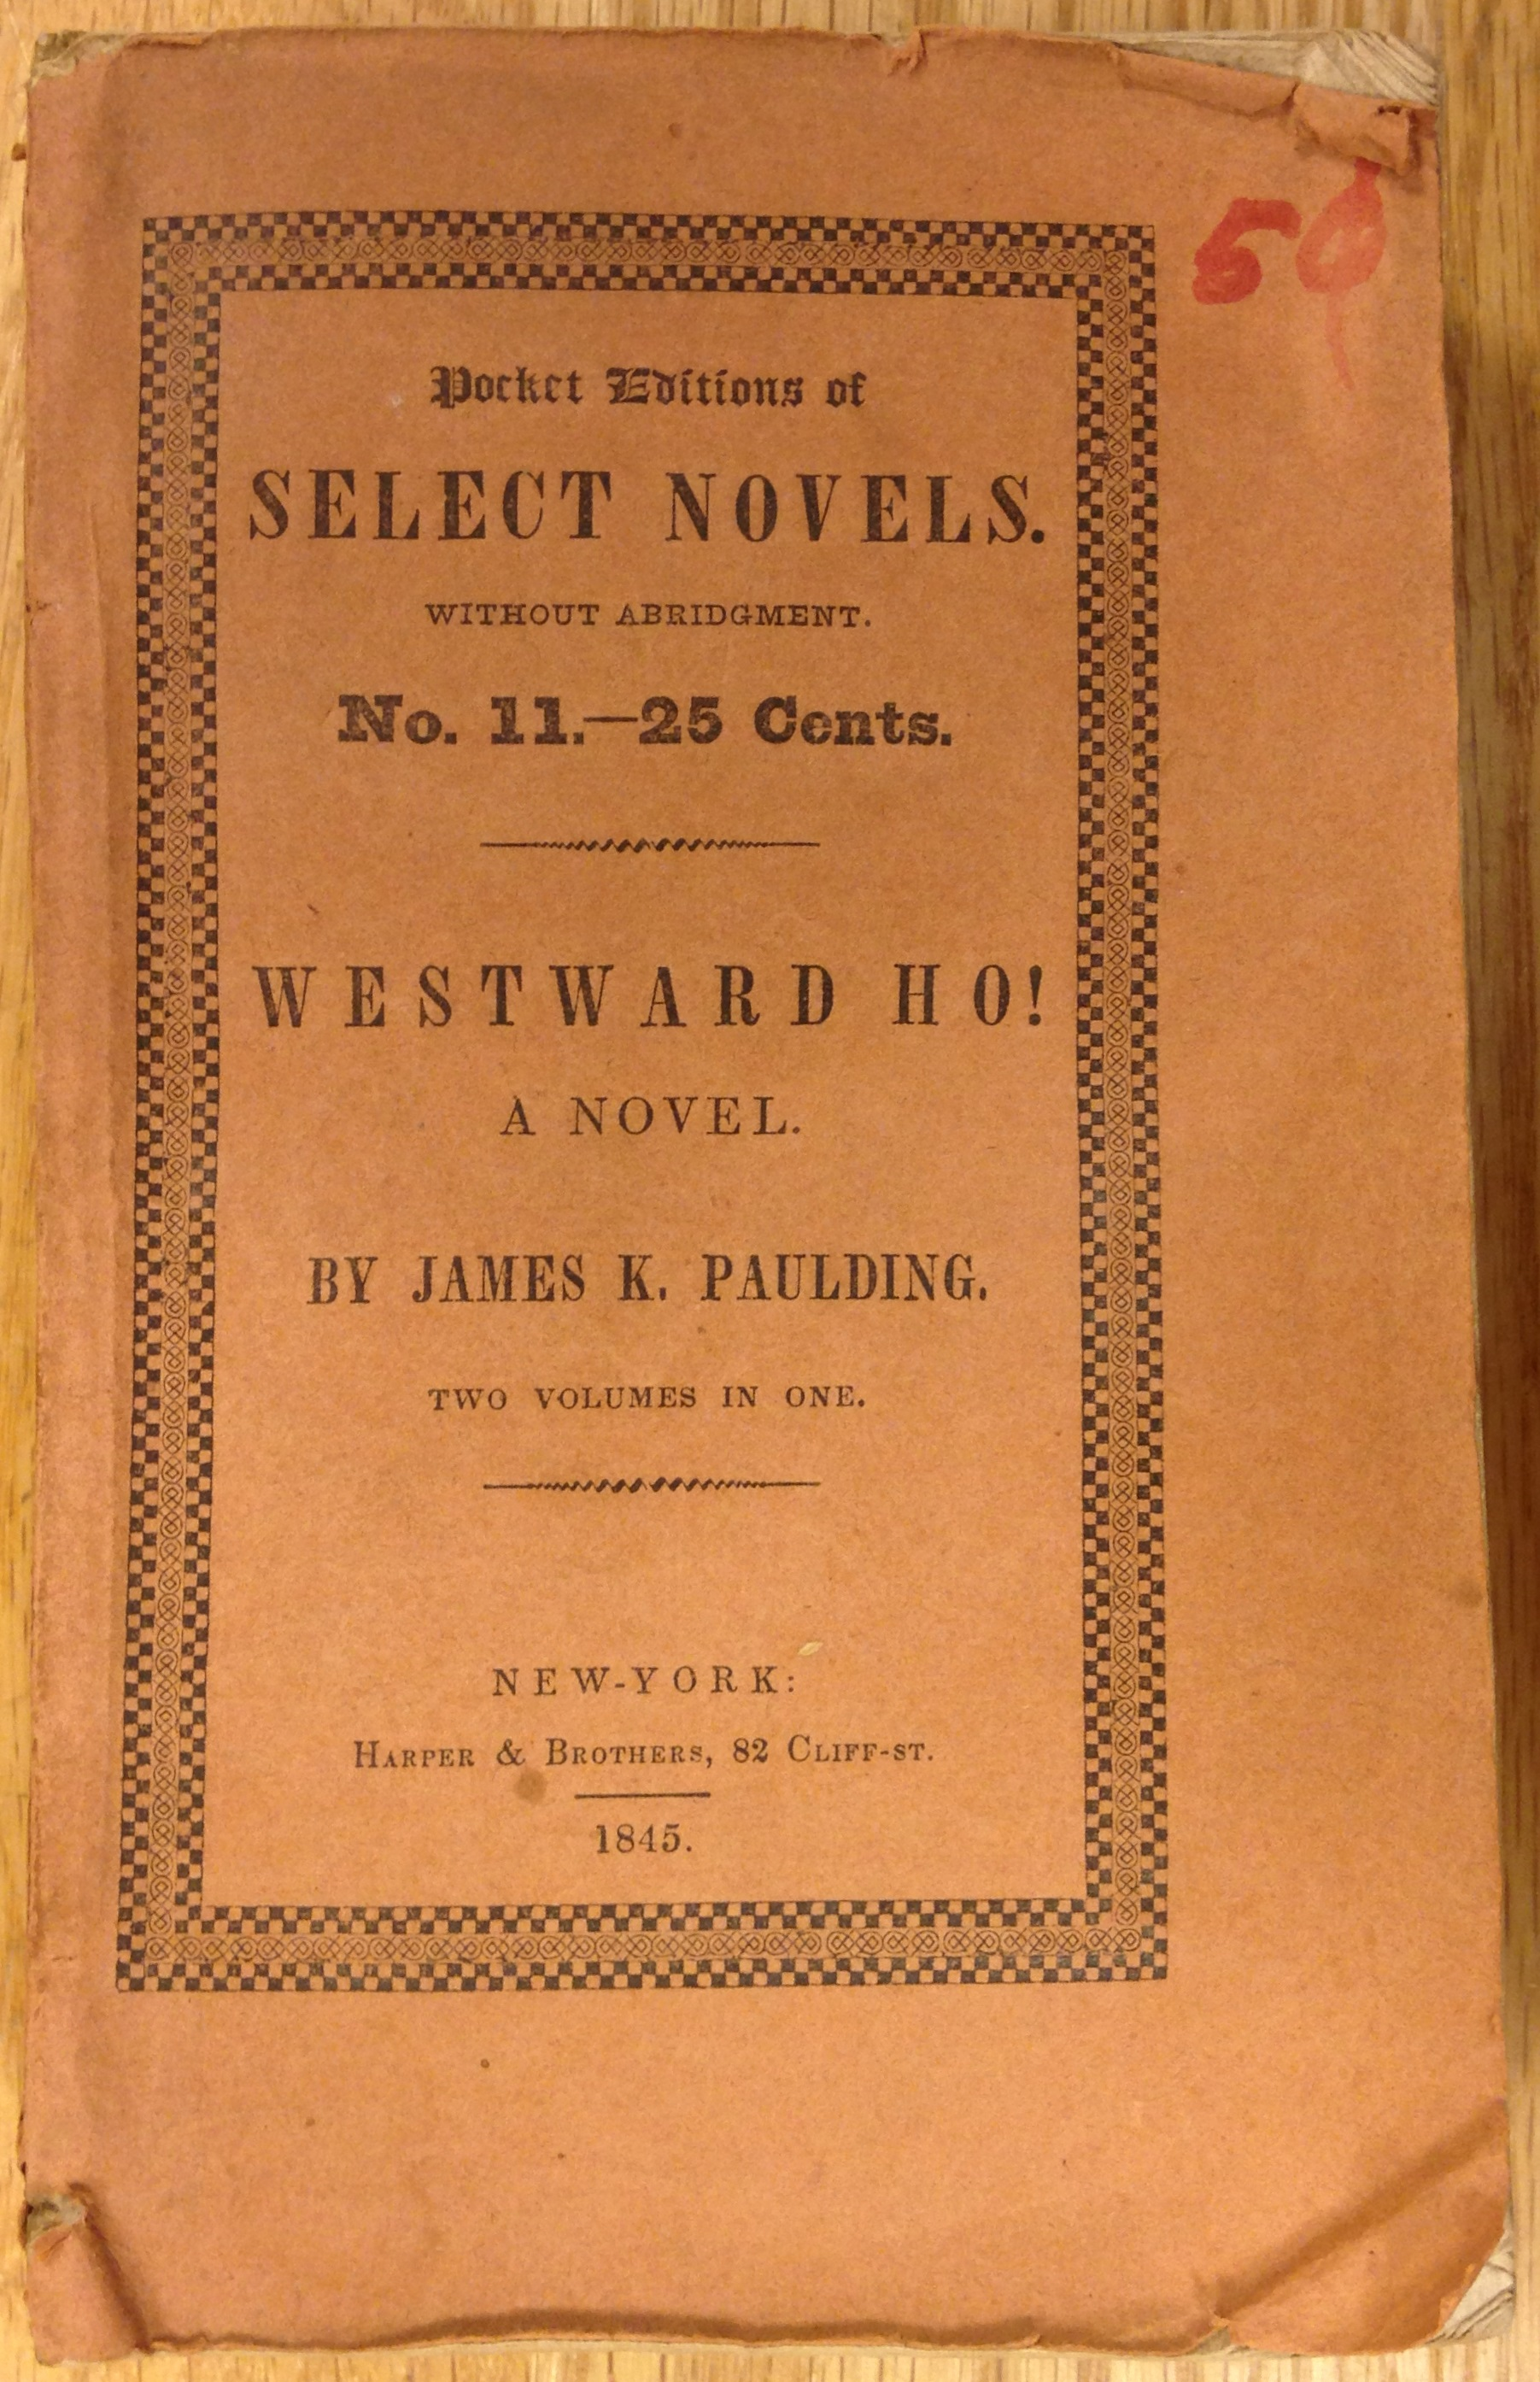 "James K. Paulding's novel Westward Ho!, published in 1832, evidently was not the success Harper & Brothers anticipated. In 1845 unsold sheets (with title pages dated 1832) were reissued in less expensive form in the ""Pocket Editions of Select Novels"" series, dated 1845 on the paper covers."